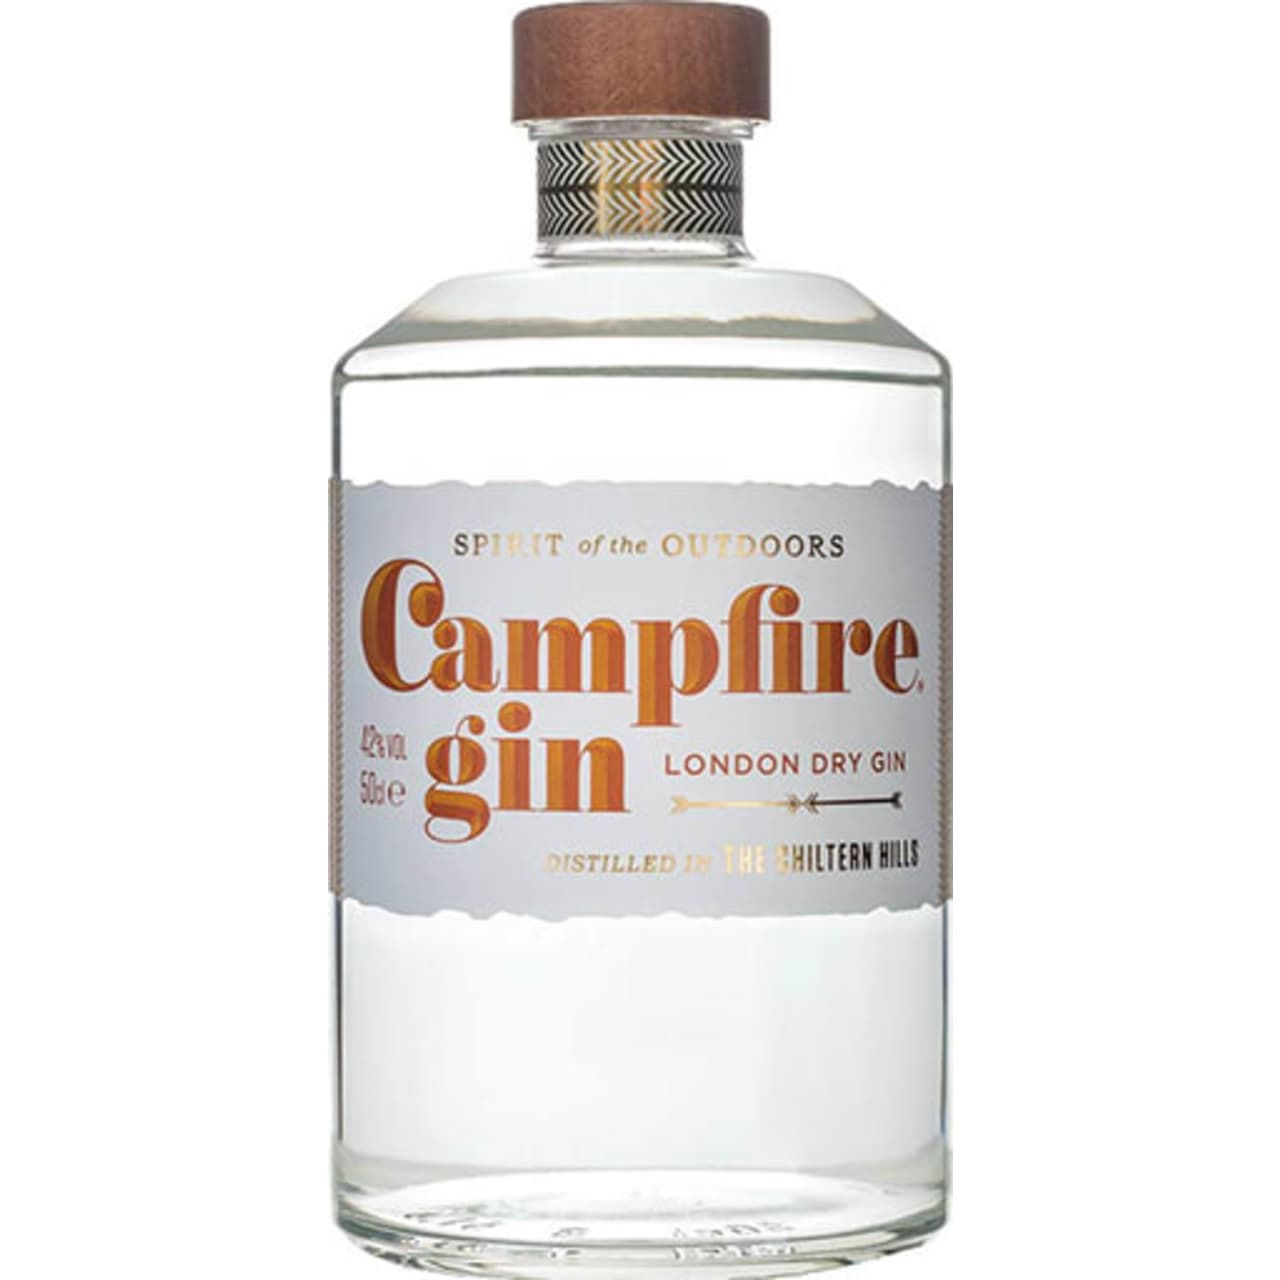 Product Image - Campfire London Dry Gin